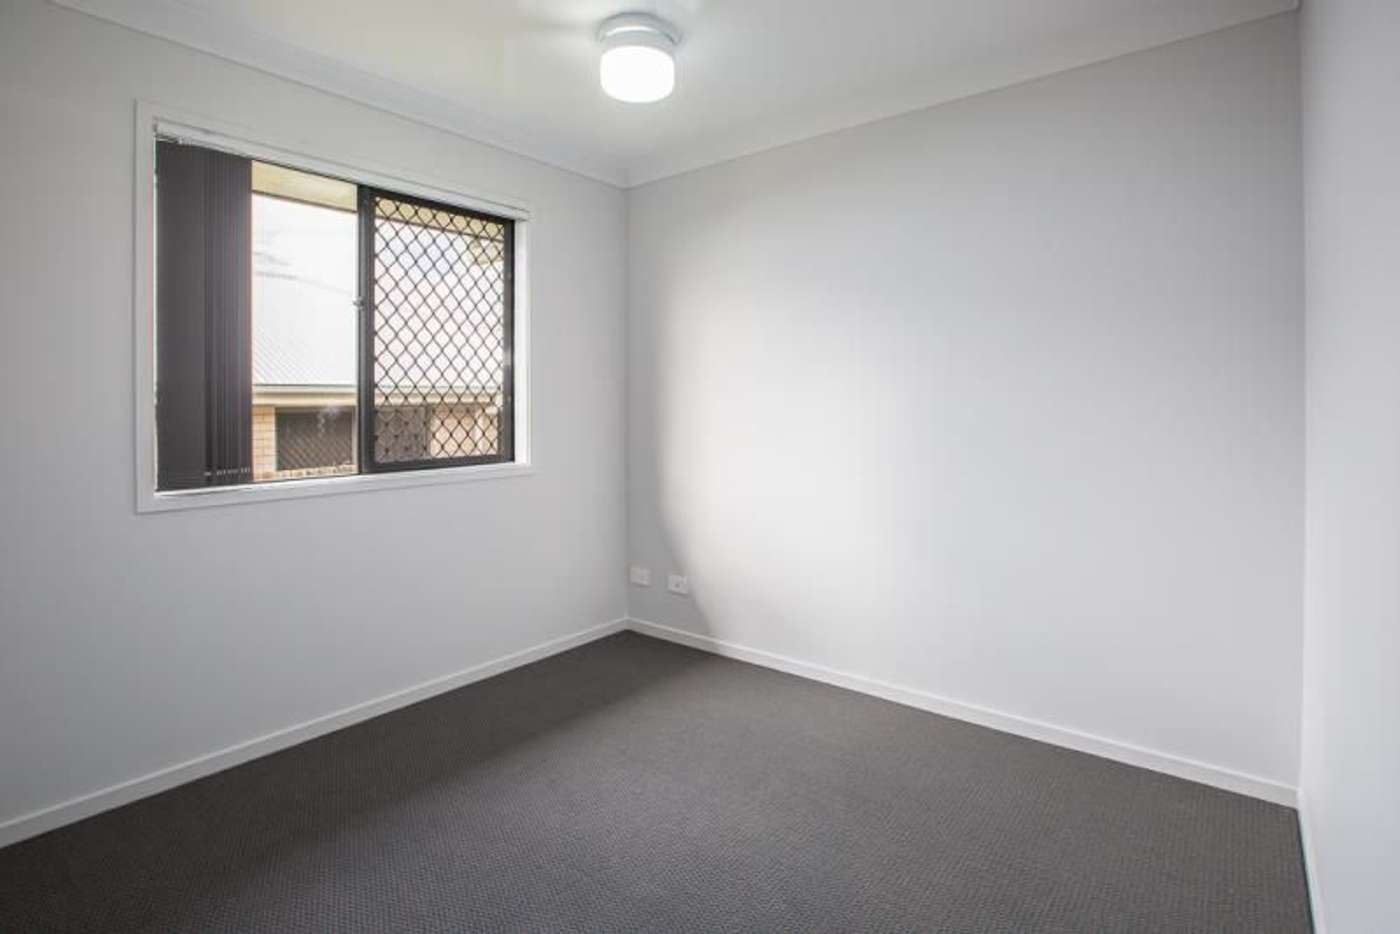 Sixth view of Homely house listing, 81 Buxton Avenue, Yarrabilba QLD 4207